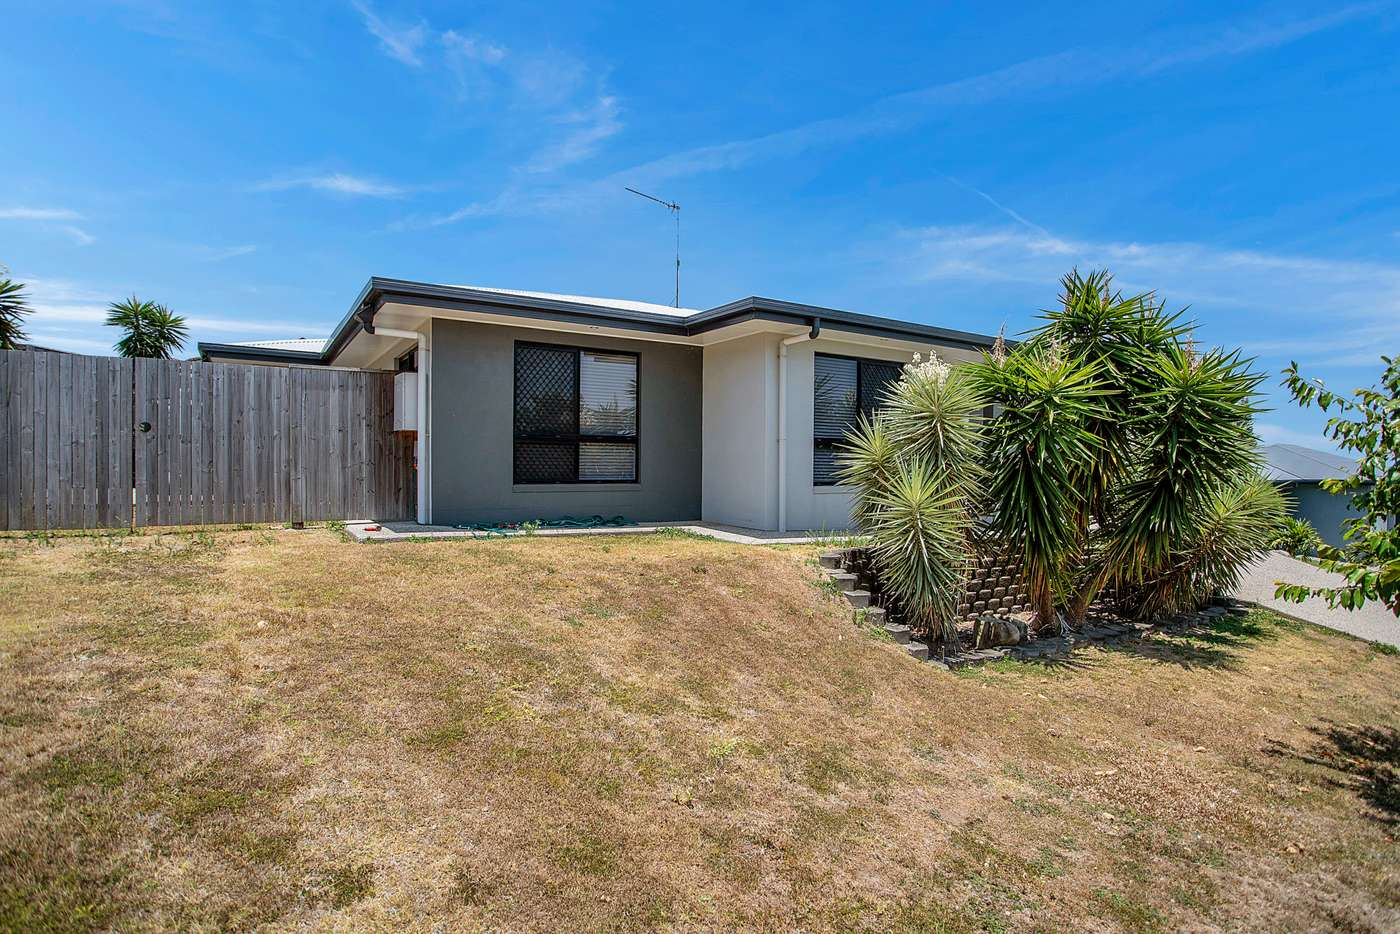 Main view of Homely house listing, 6 Bensara Drive, Beaconsfield QLD 4740